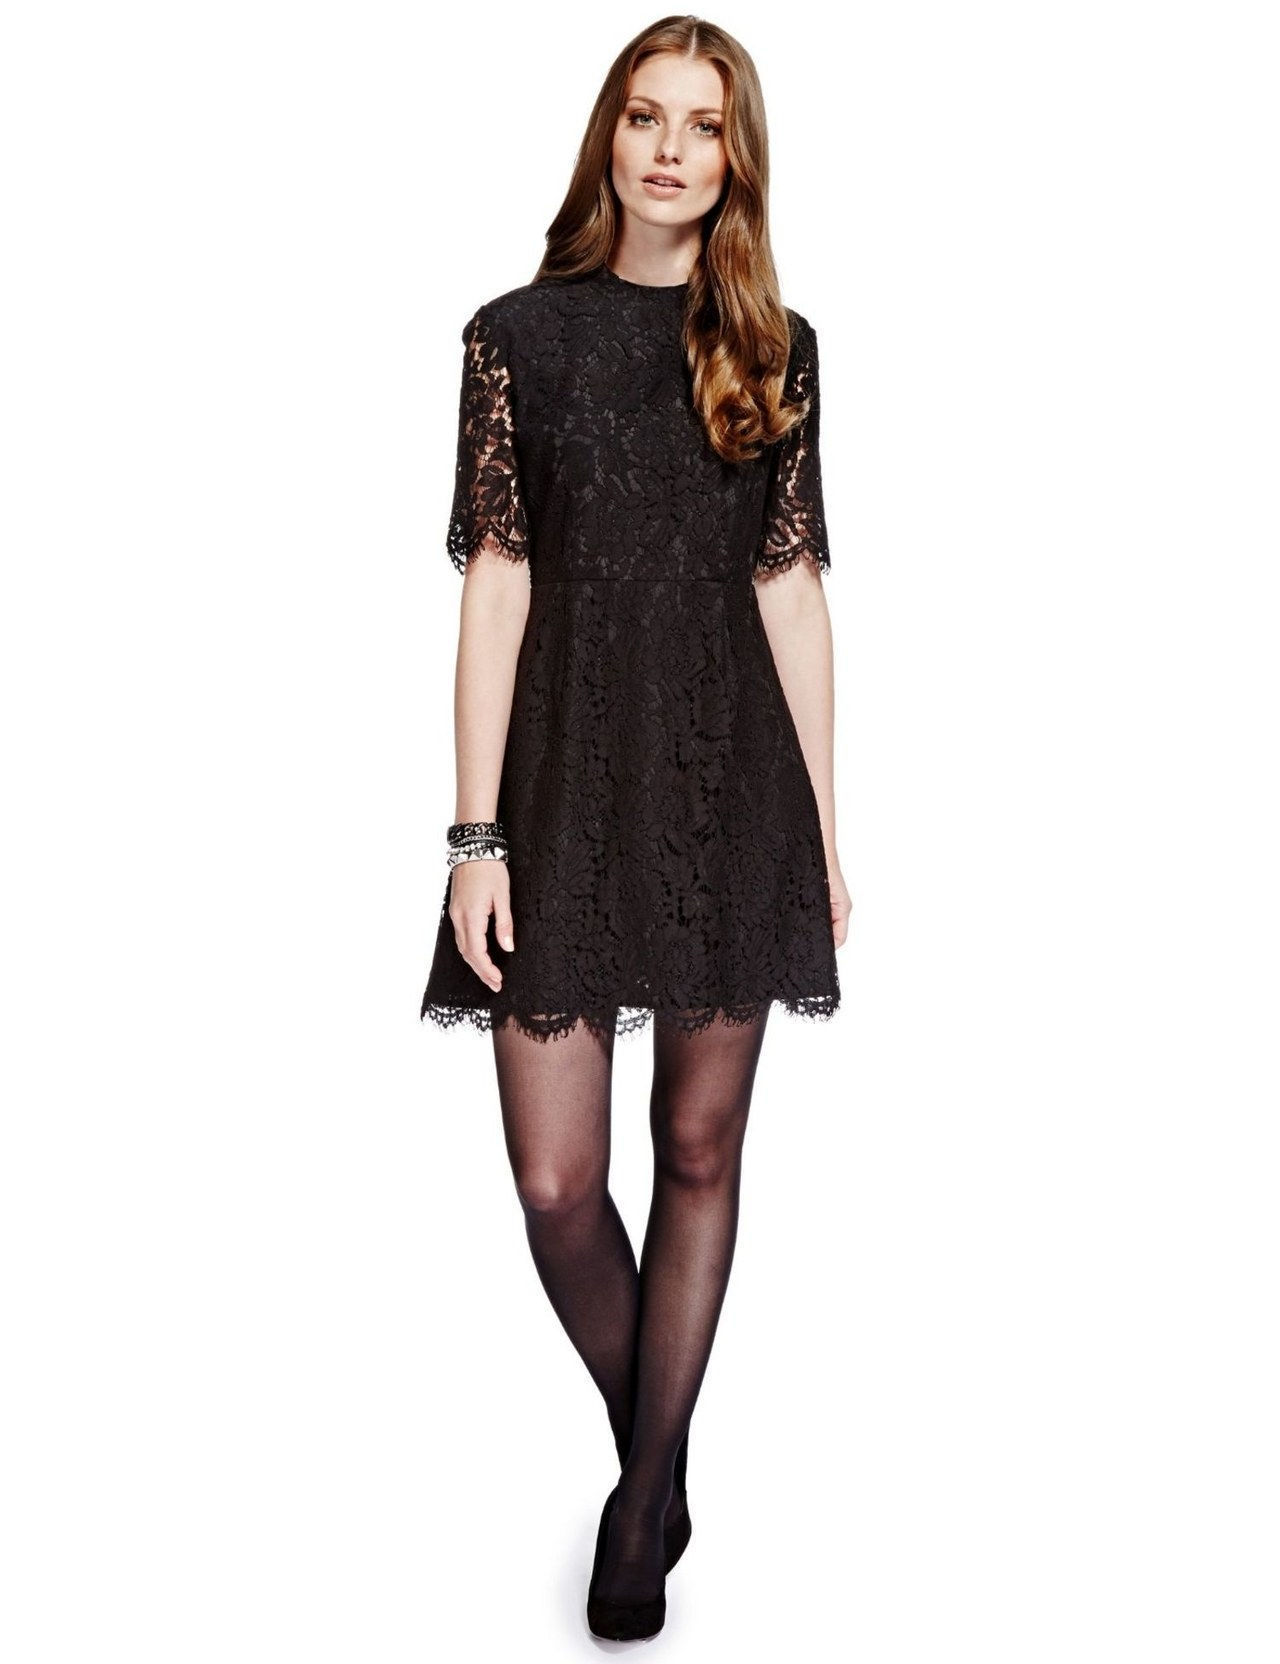 oznake spencer dress